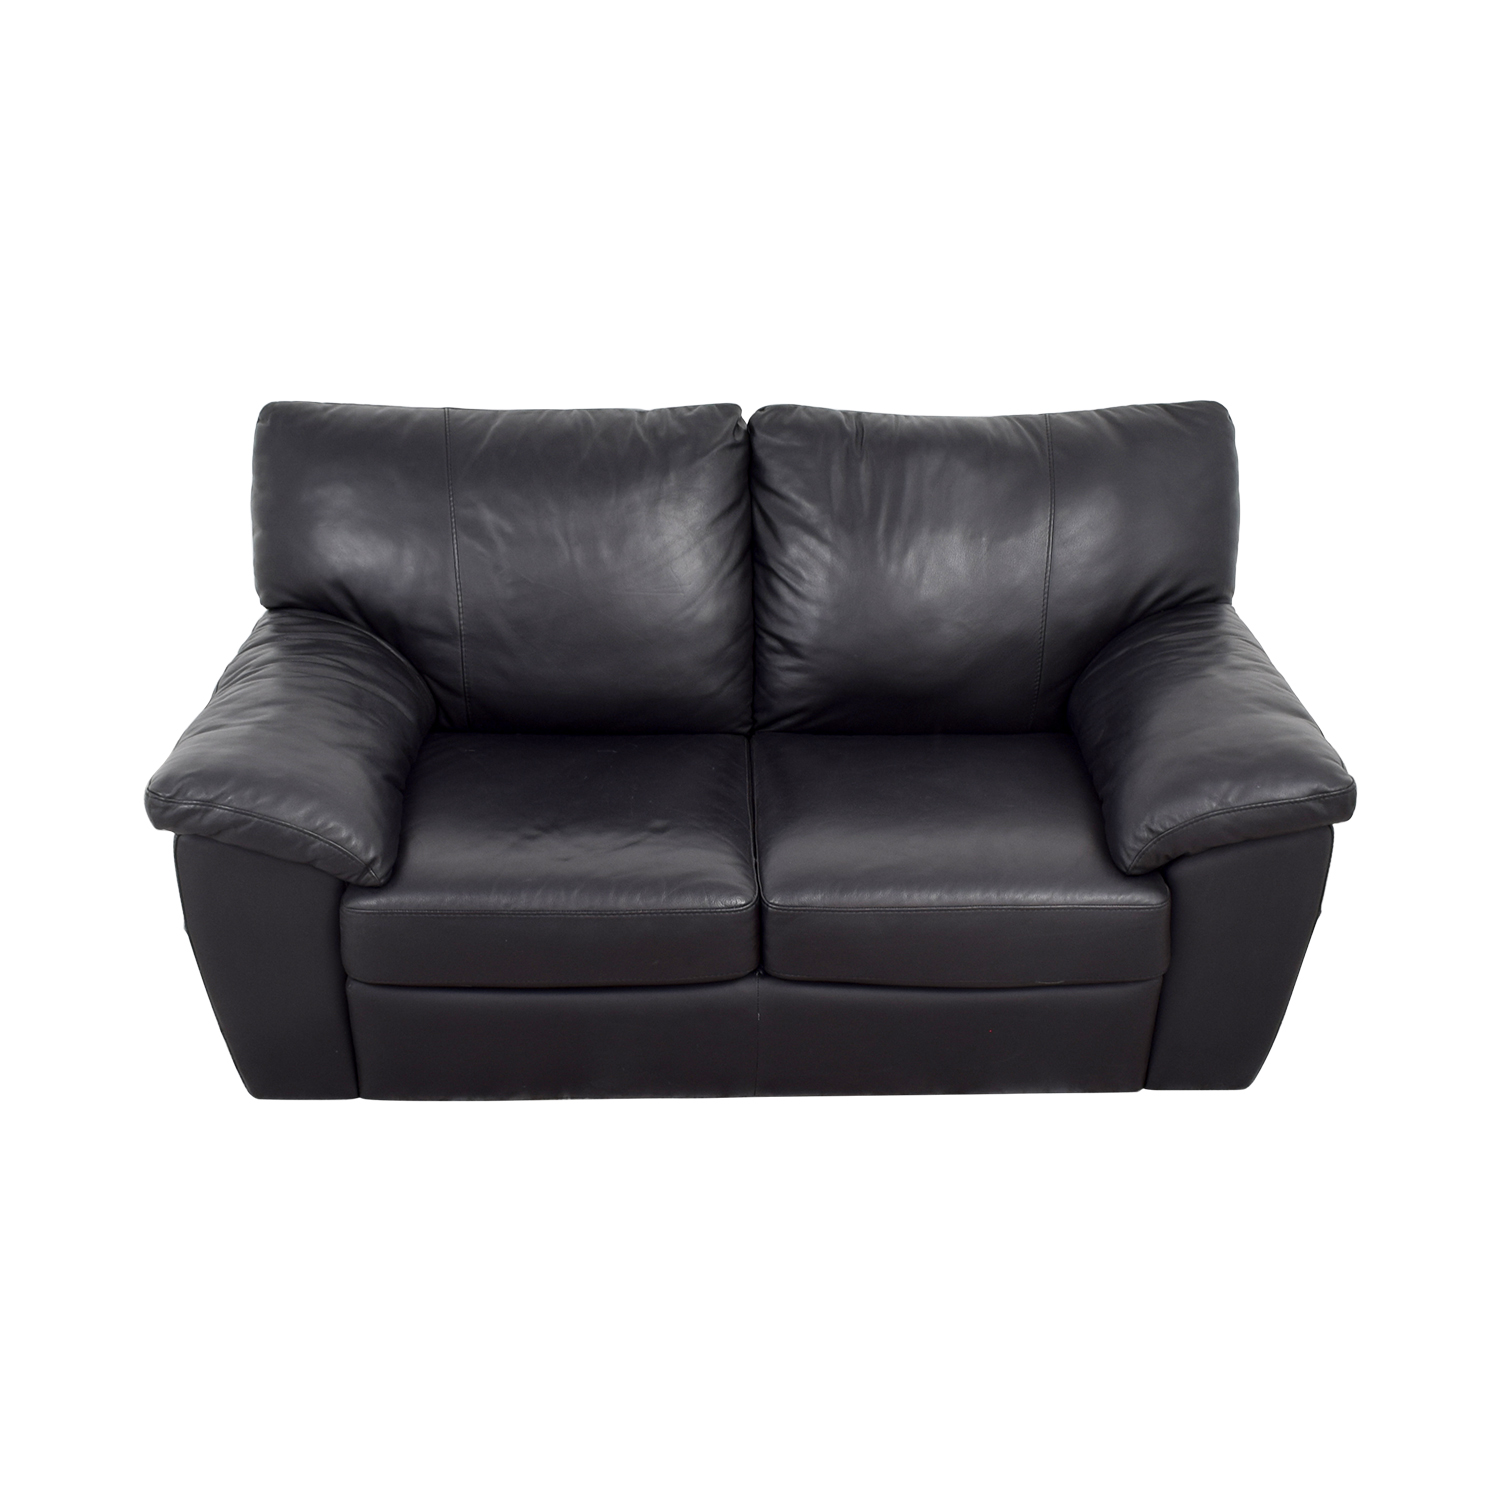 81 off ikea ikea black leather two cushion couch sofas for Cushions for leather sofas